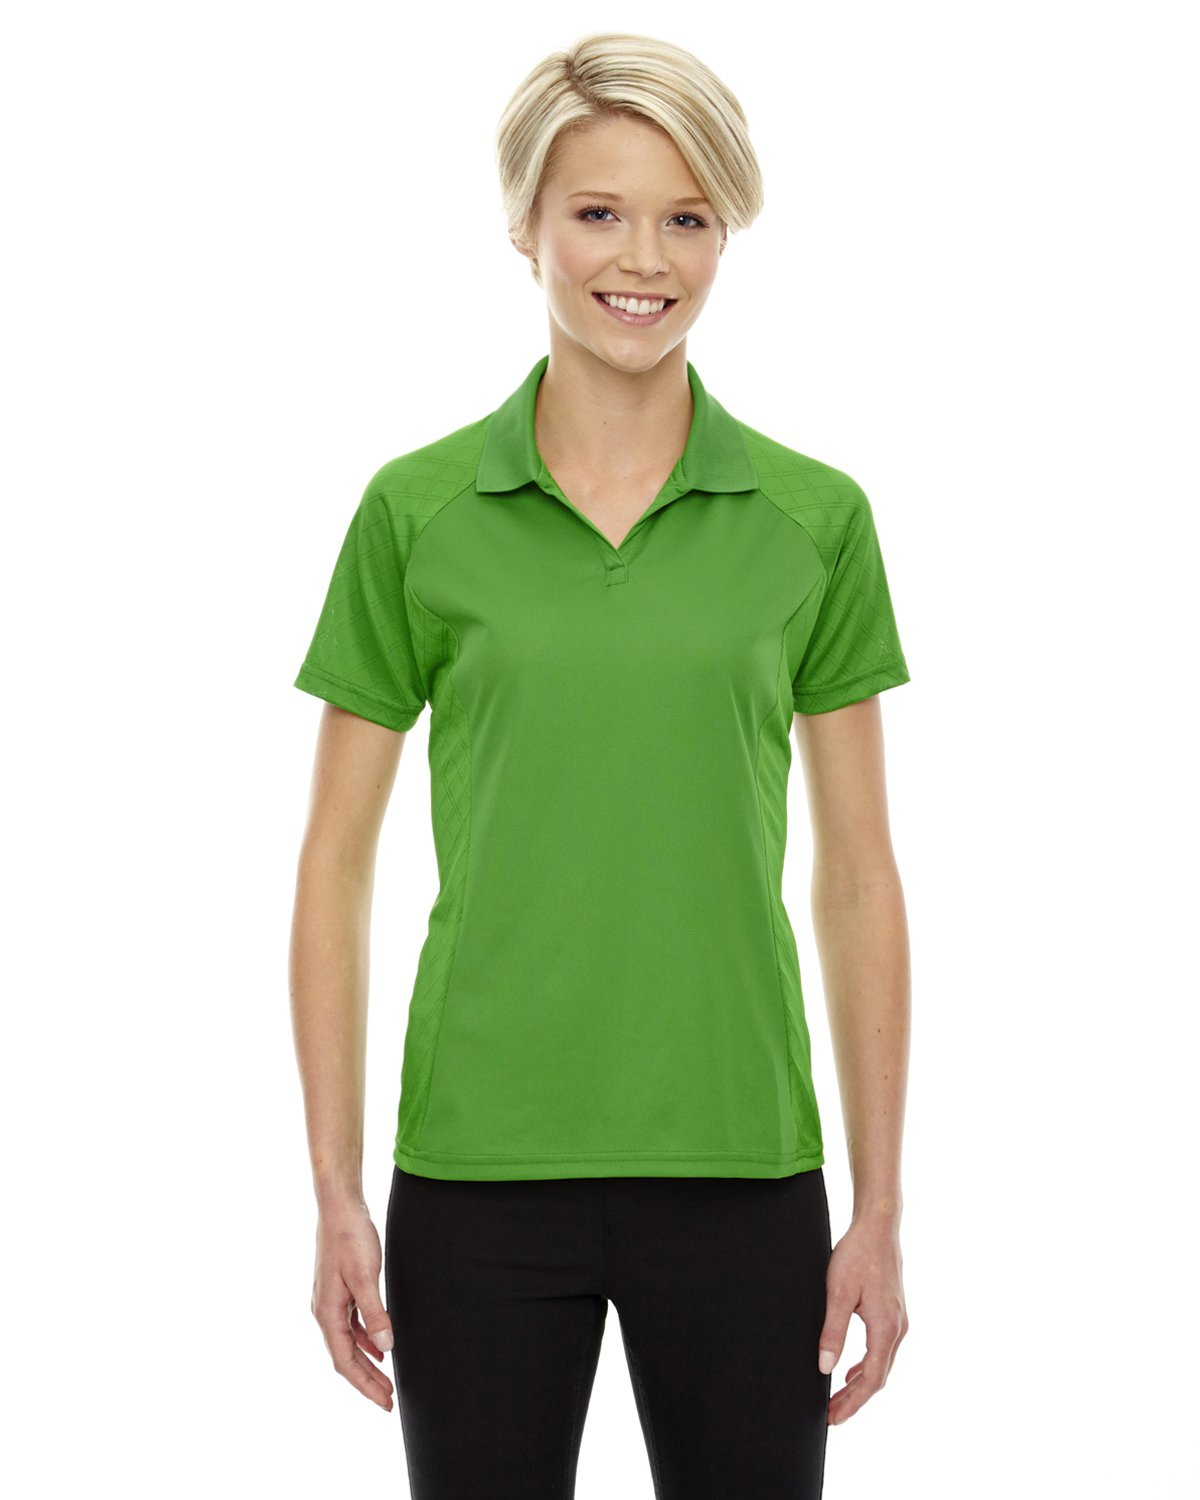 Ash City Extreme 75116 - STRIDE LADIES' JACQUARD POLOS Ash City - Extreme